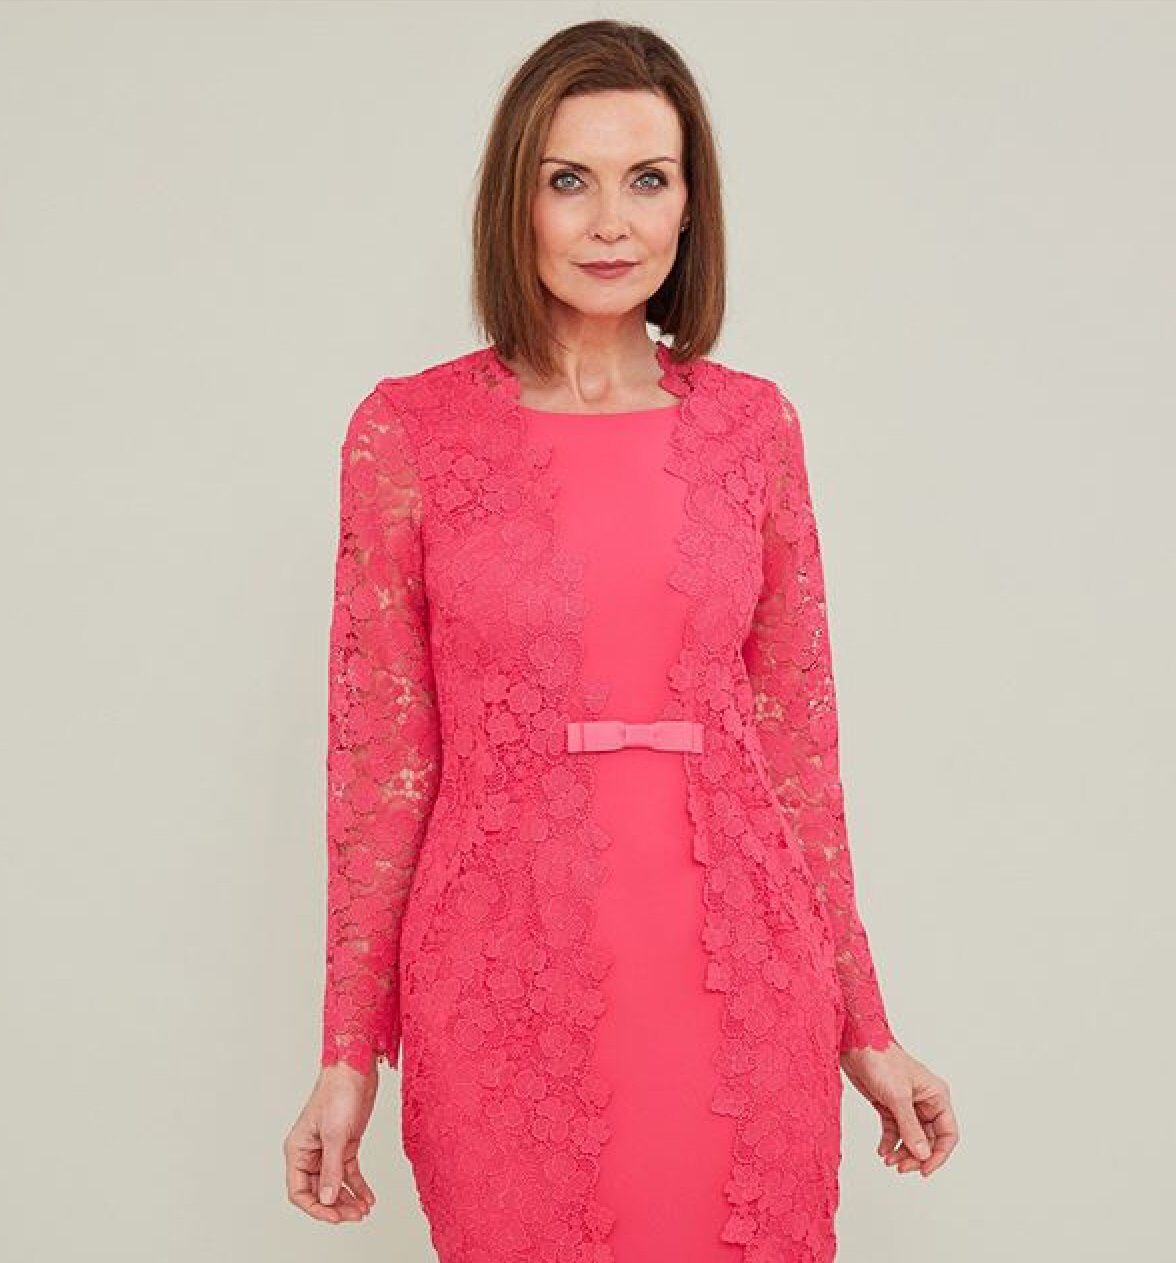 Dress with Lace Overlay Sleeves and bow detail at the front